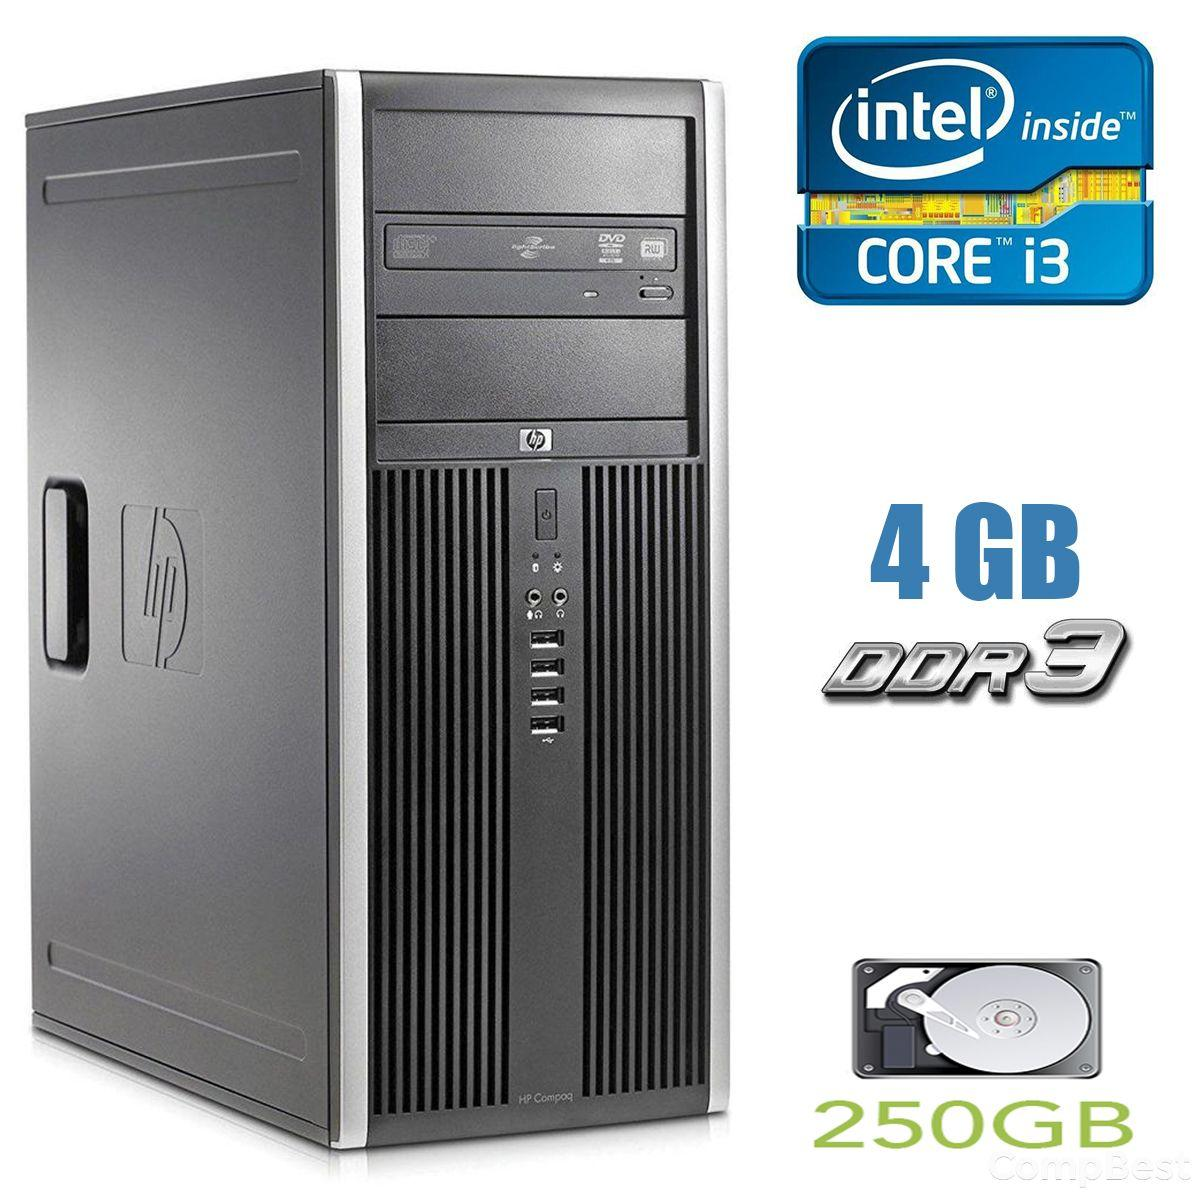 HP Compaq Elite 8100 MT / Intel Core i3-540 (2 (4) ядра по 3.06GHz) / 4GB DDR3 / 250GB HDD